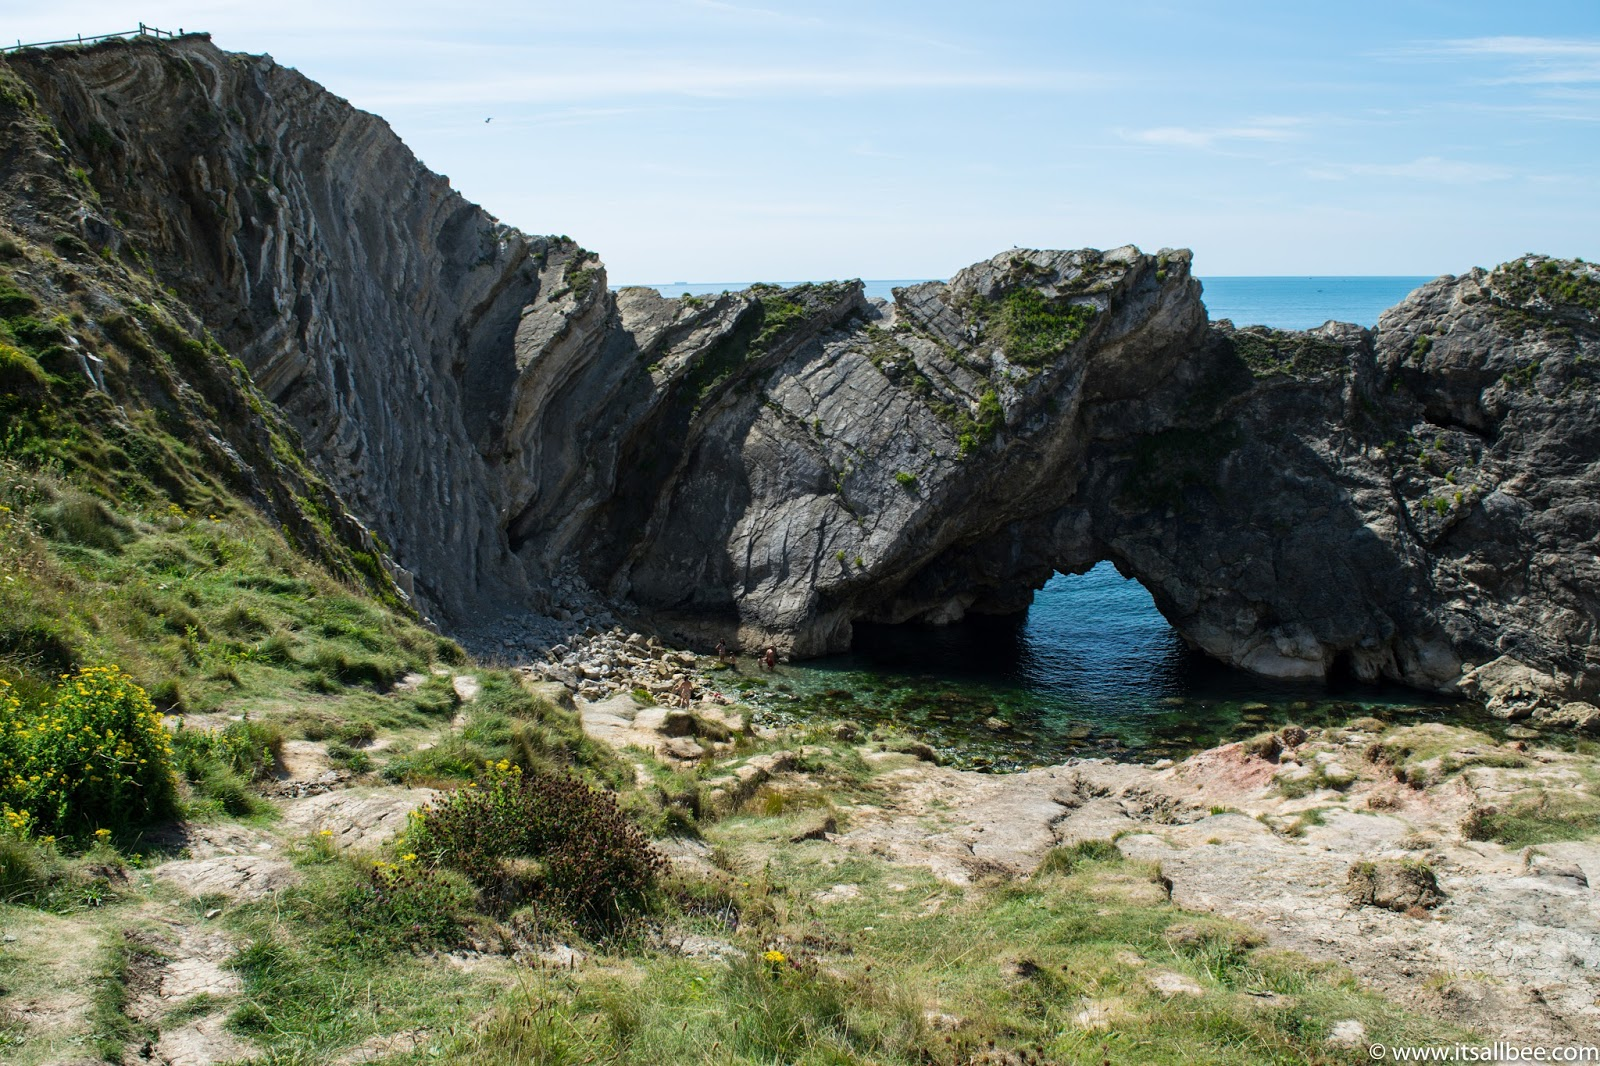 lulworth cove walks in Dorset England | lulworth cove formations